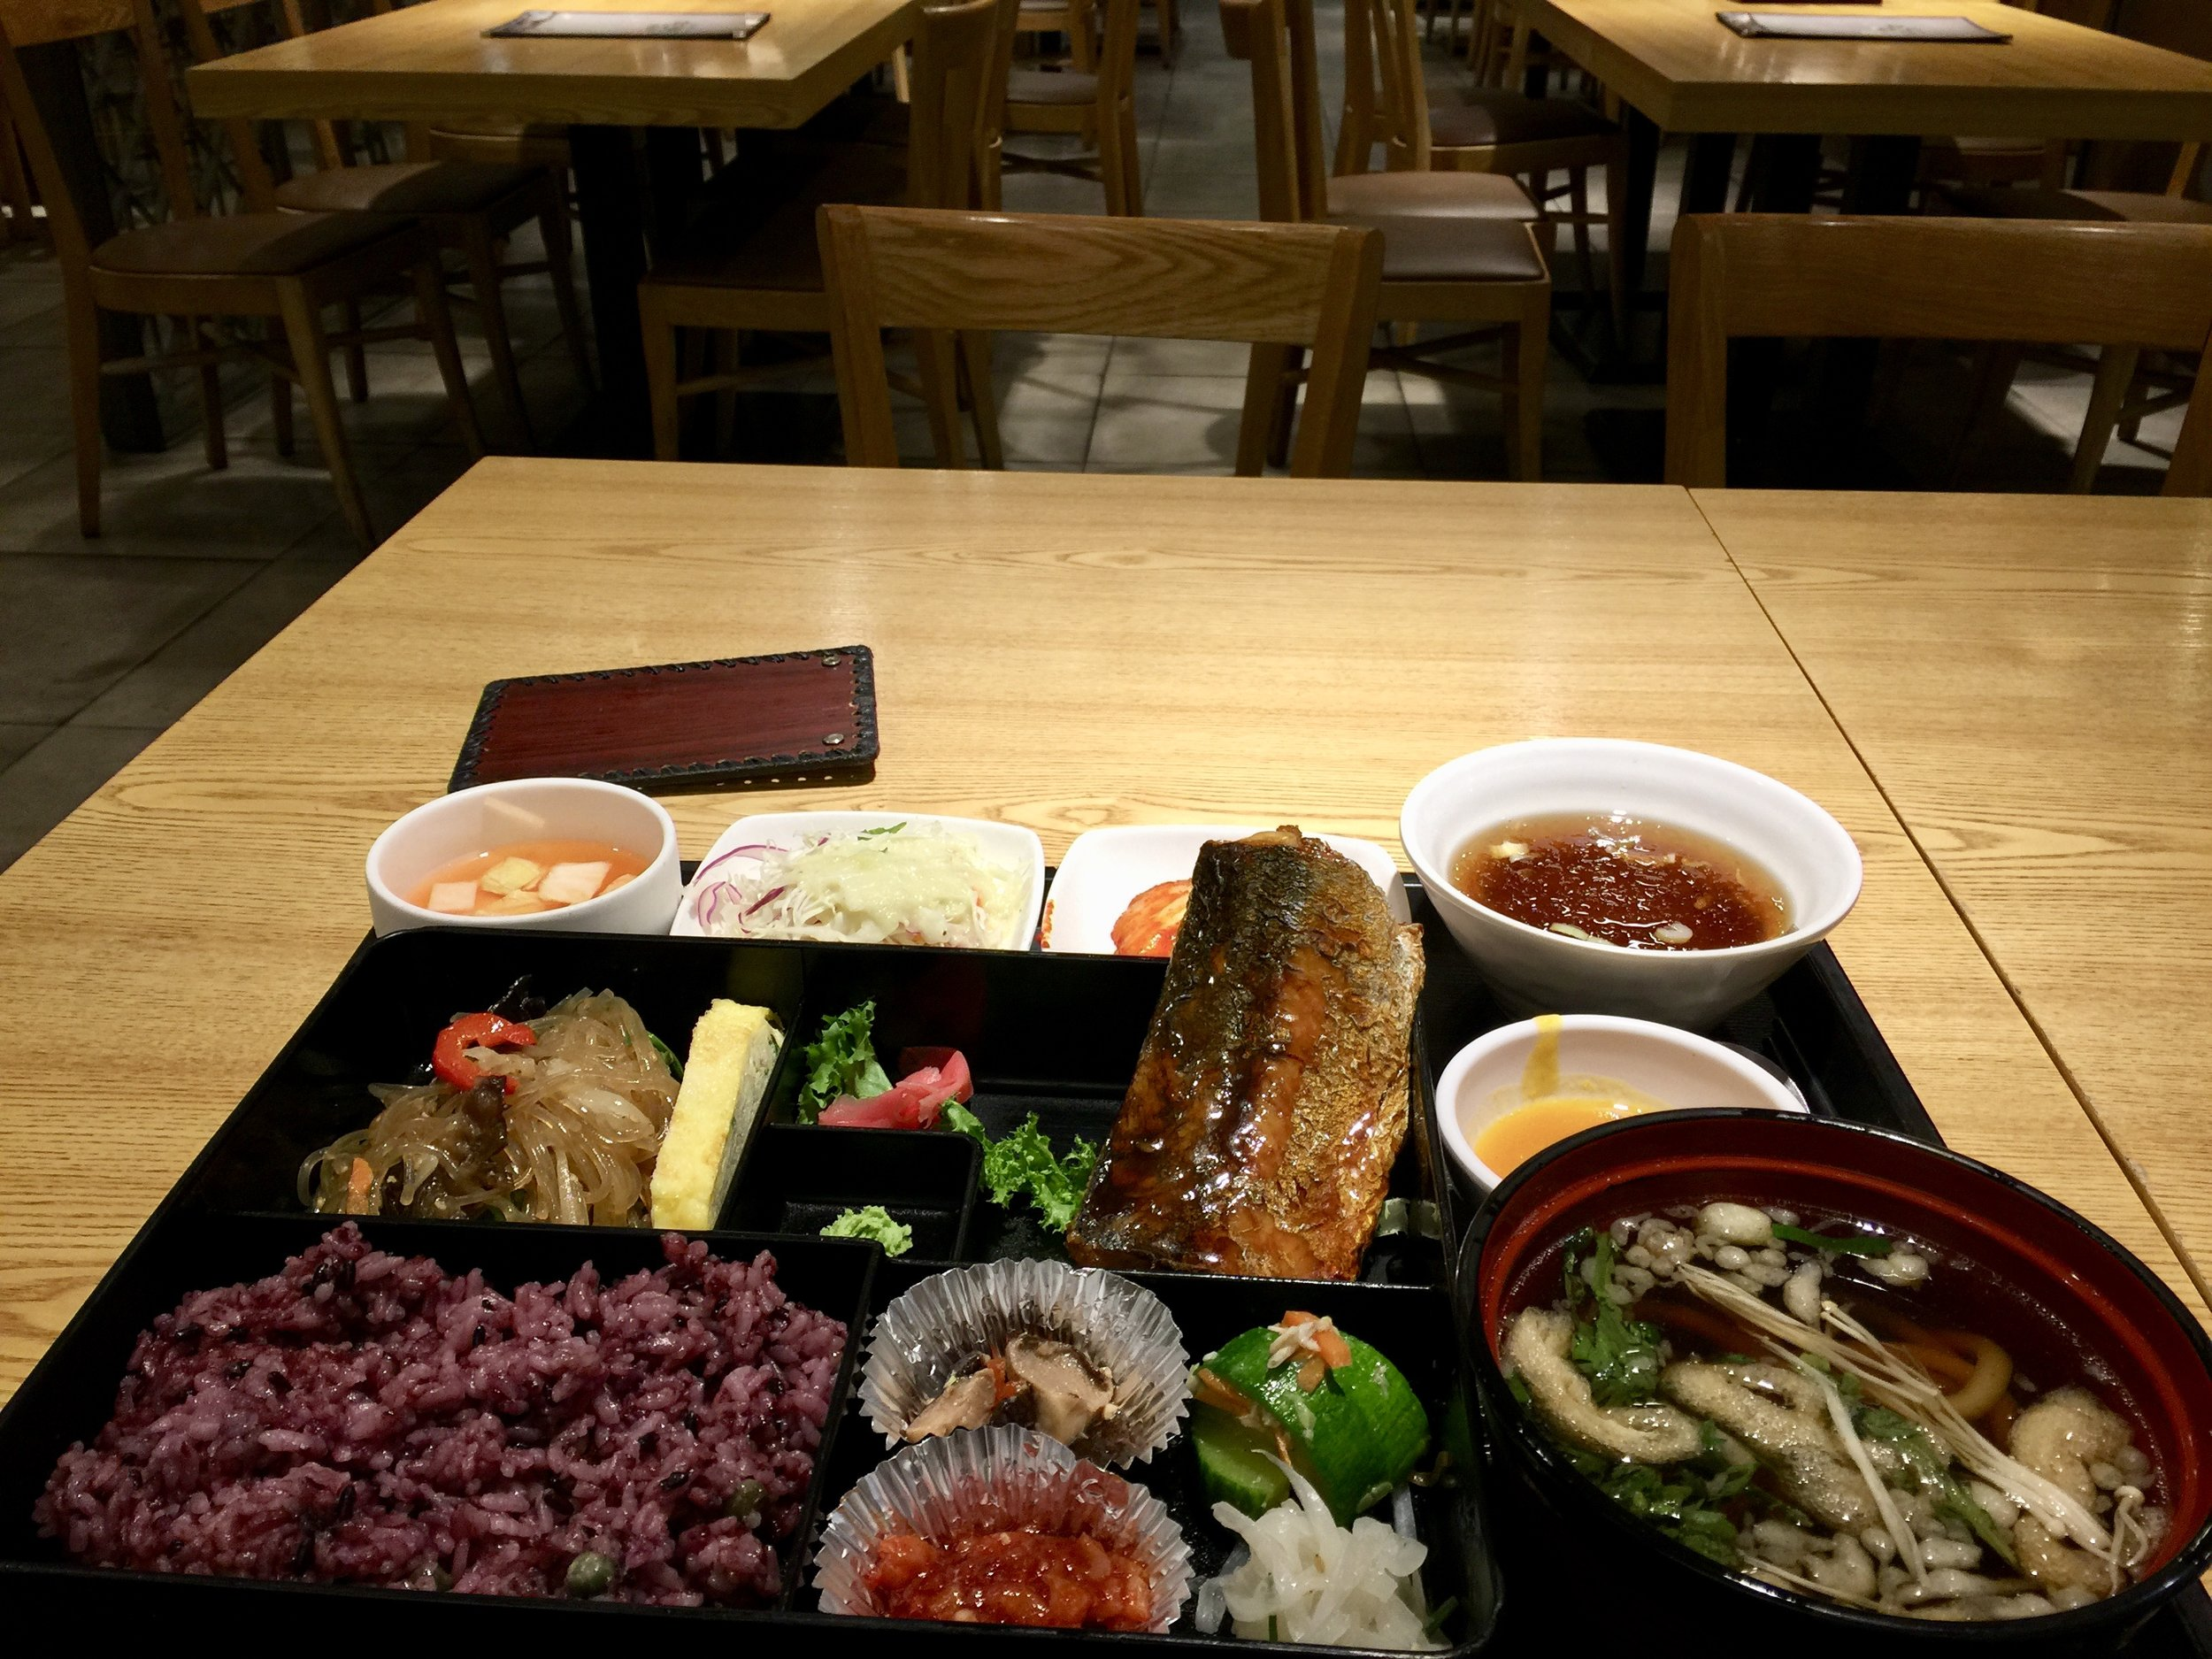 Fantastic, healthy Korean meal